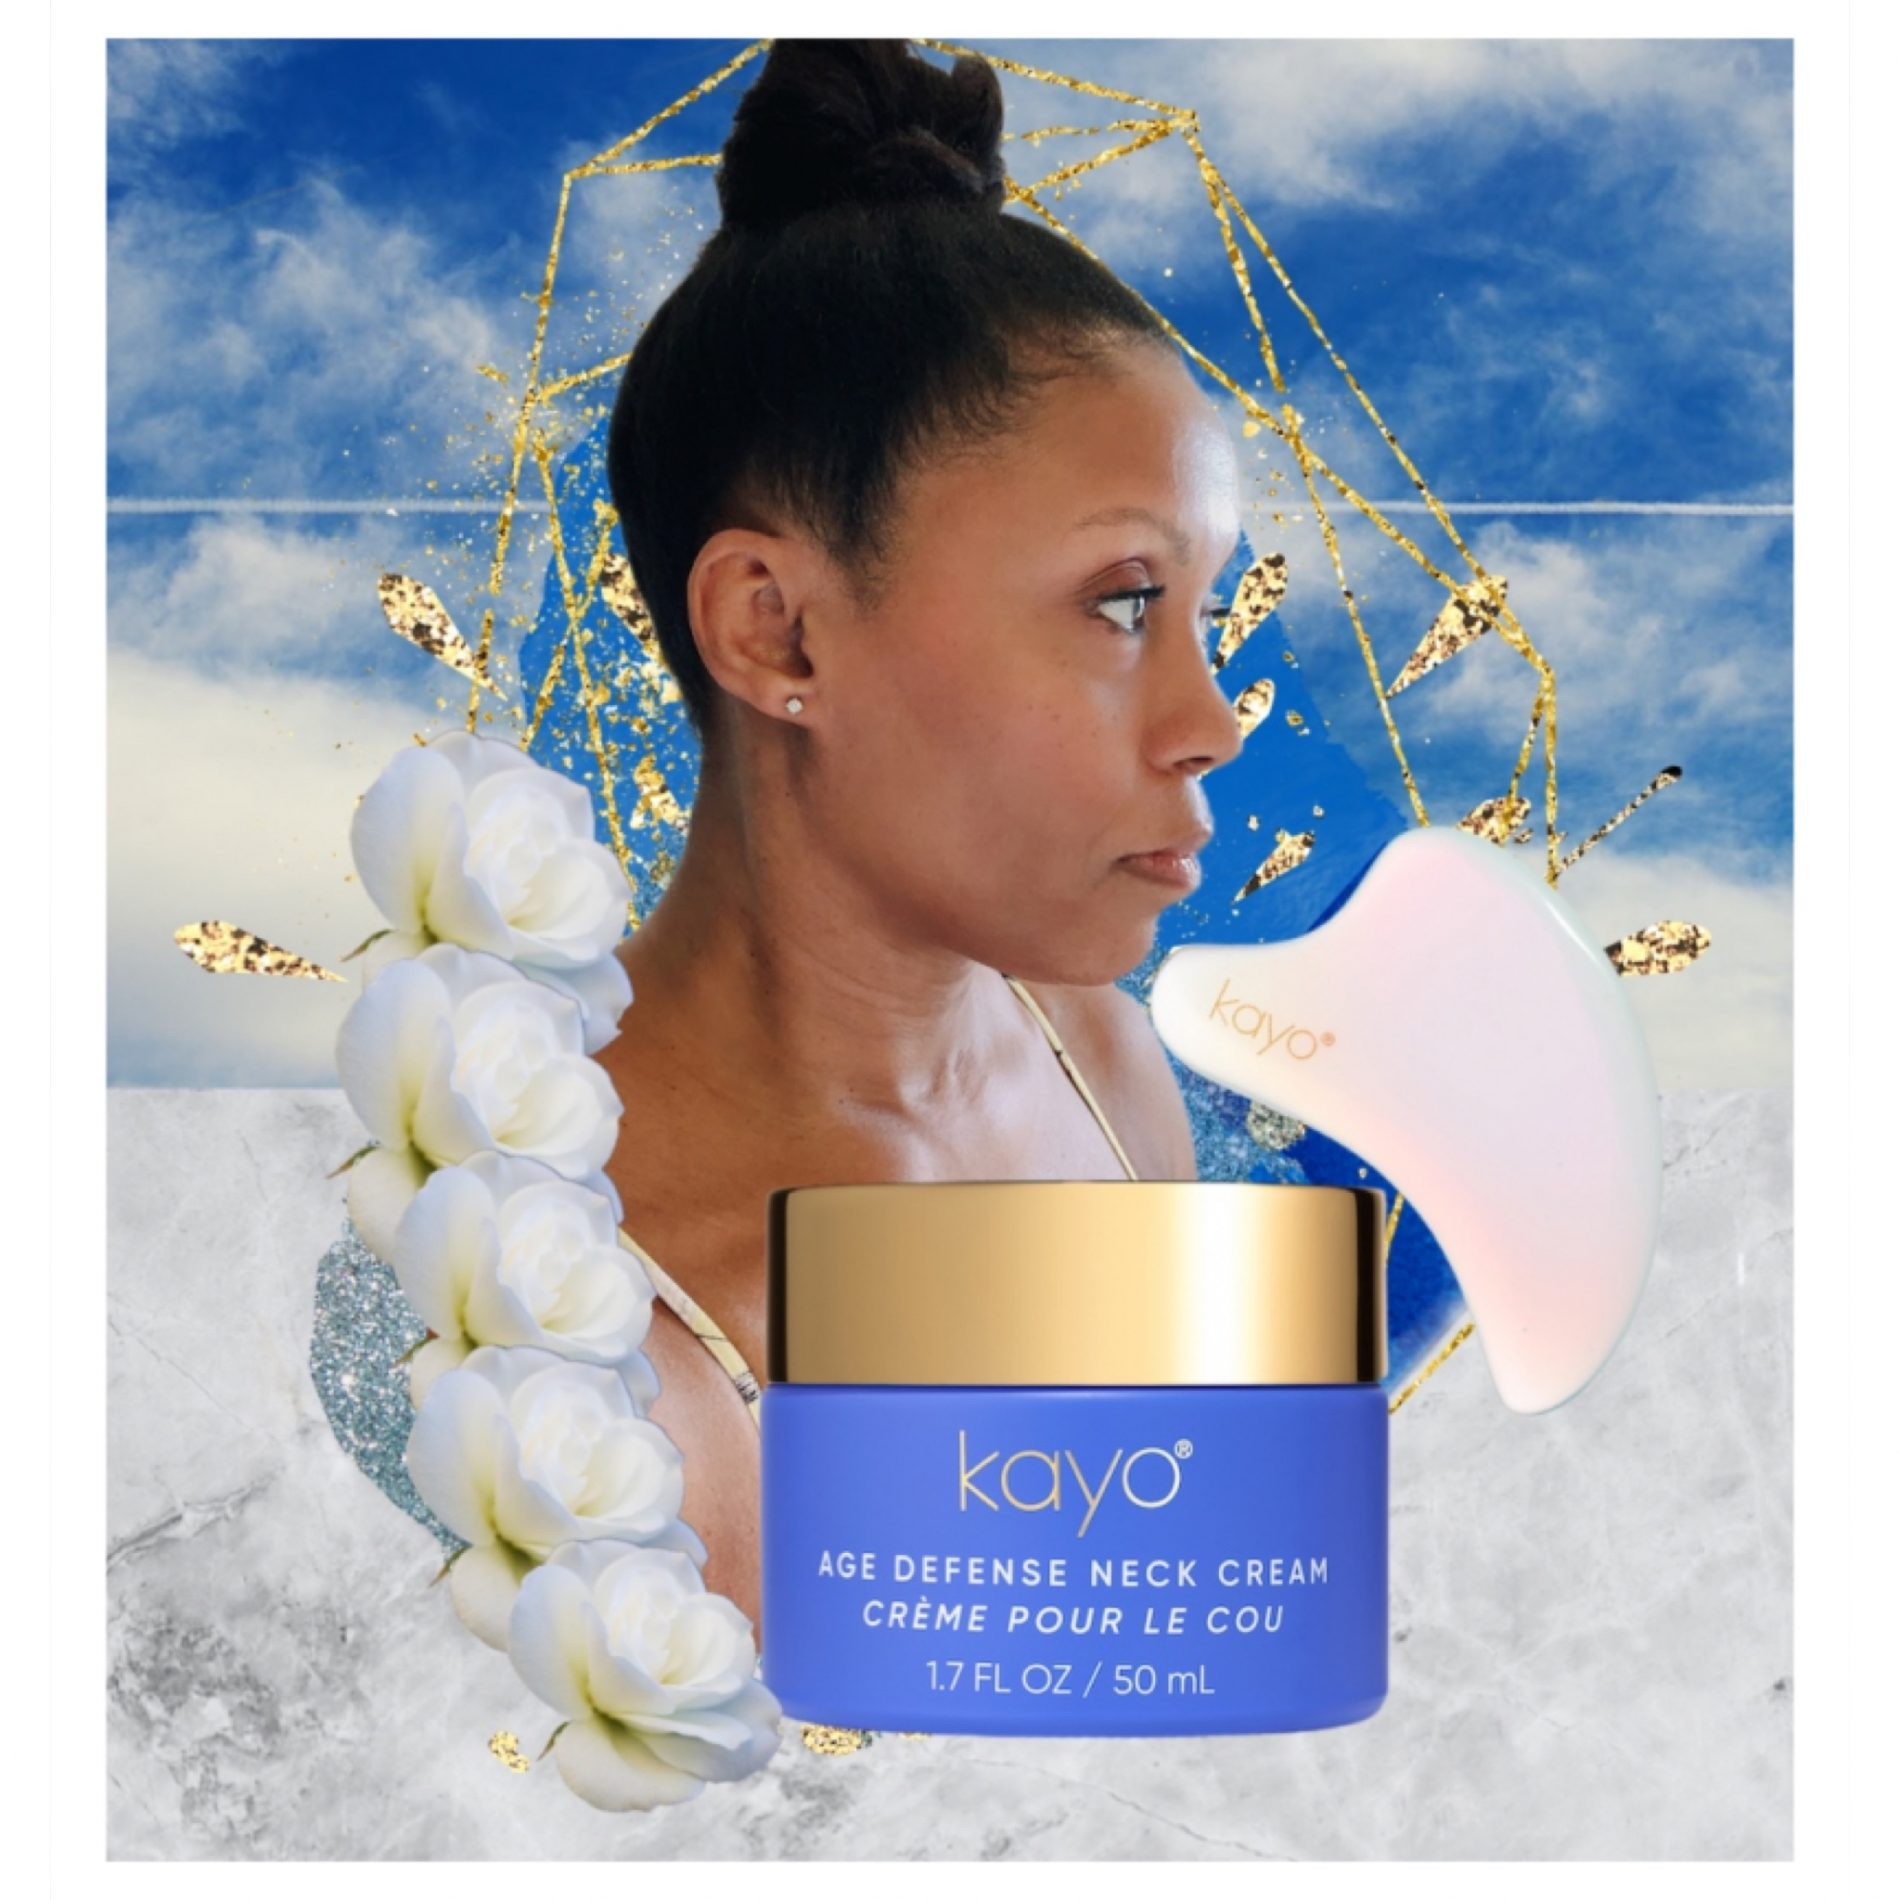 Kayo Neck Cream; kayo body care reviews